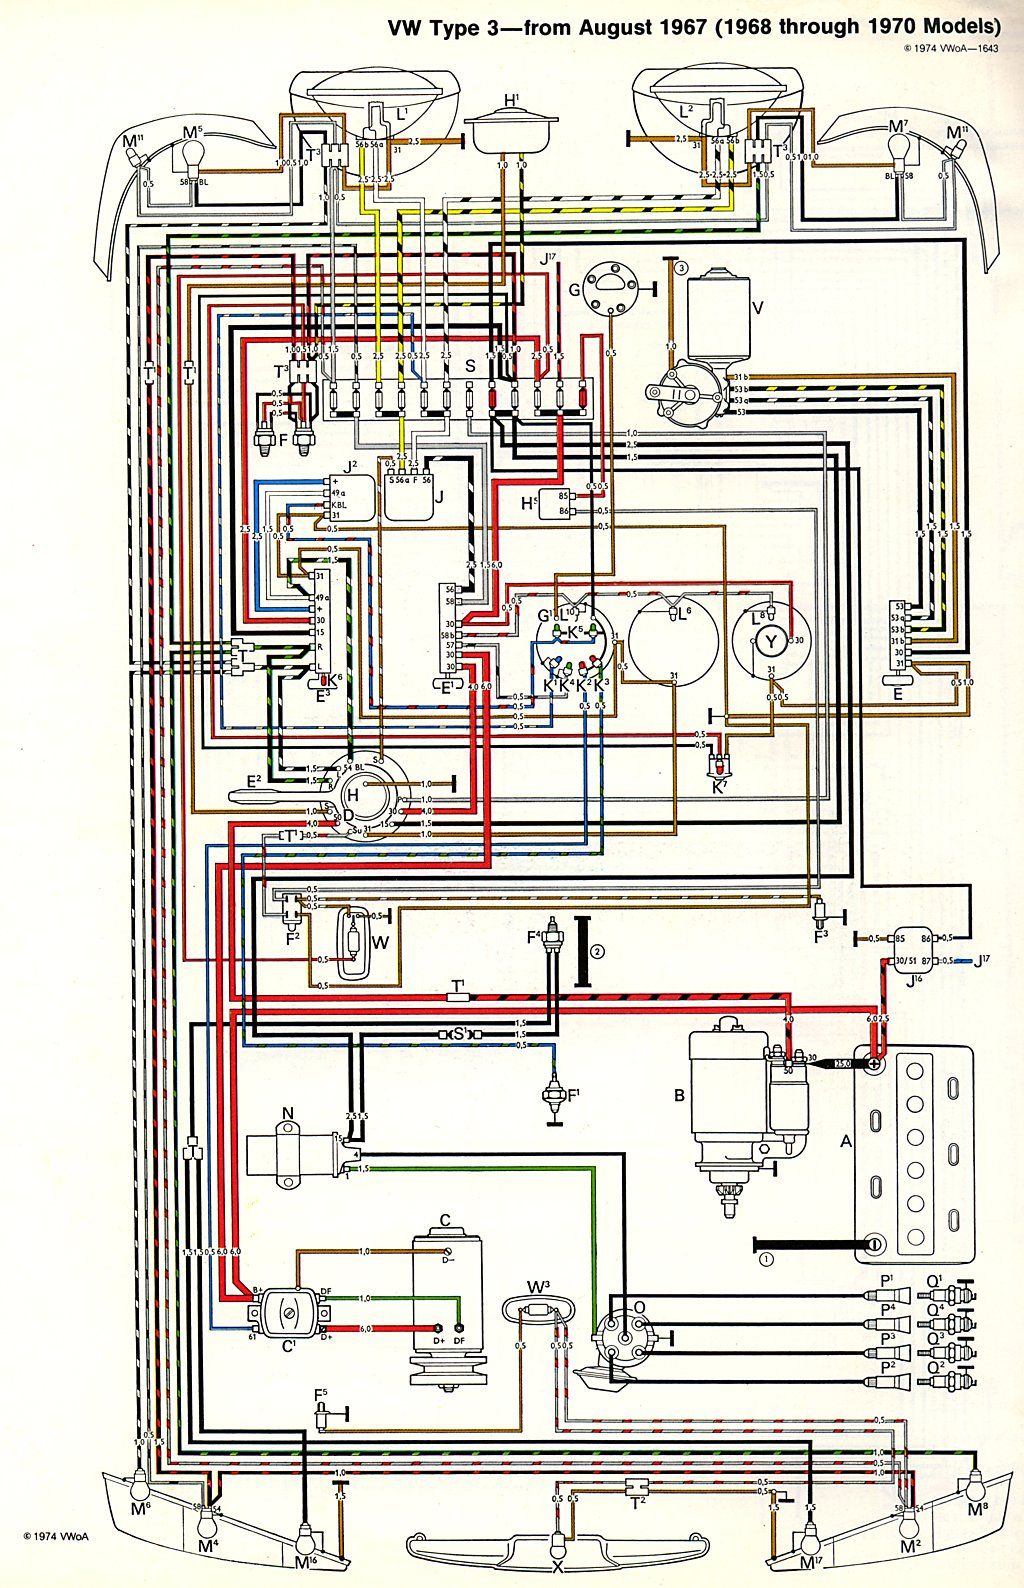 type3_6870 vw type 3 wiring diagram vw wiring diagrams free downloads \u2022 free vw type 3 wiring harness at readyjetset.co